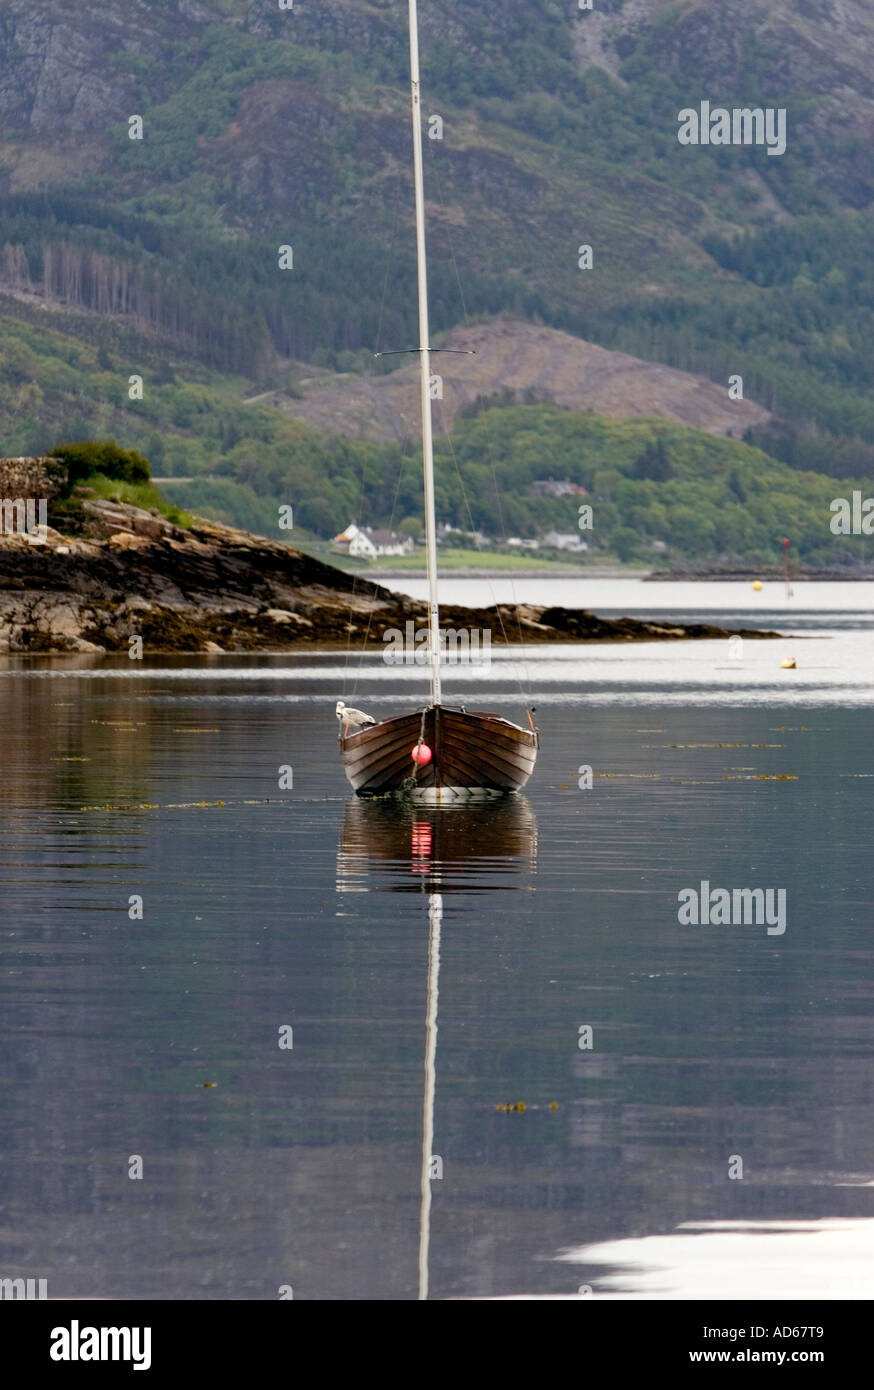 Single wooden hulled boat moored in the harbour at Plockton. Ross and Cromarty, Scotland - Stock Image